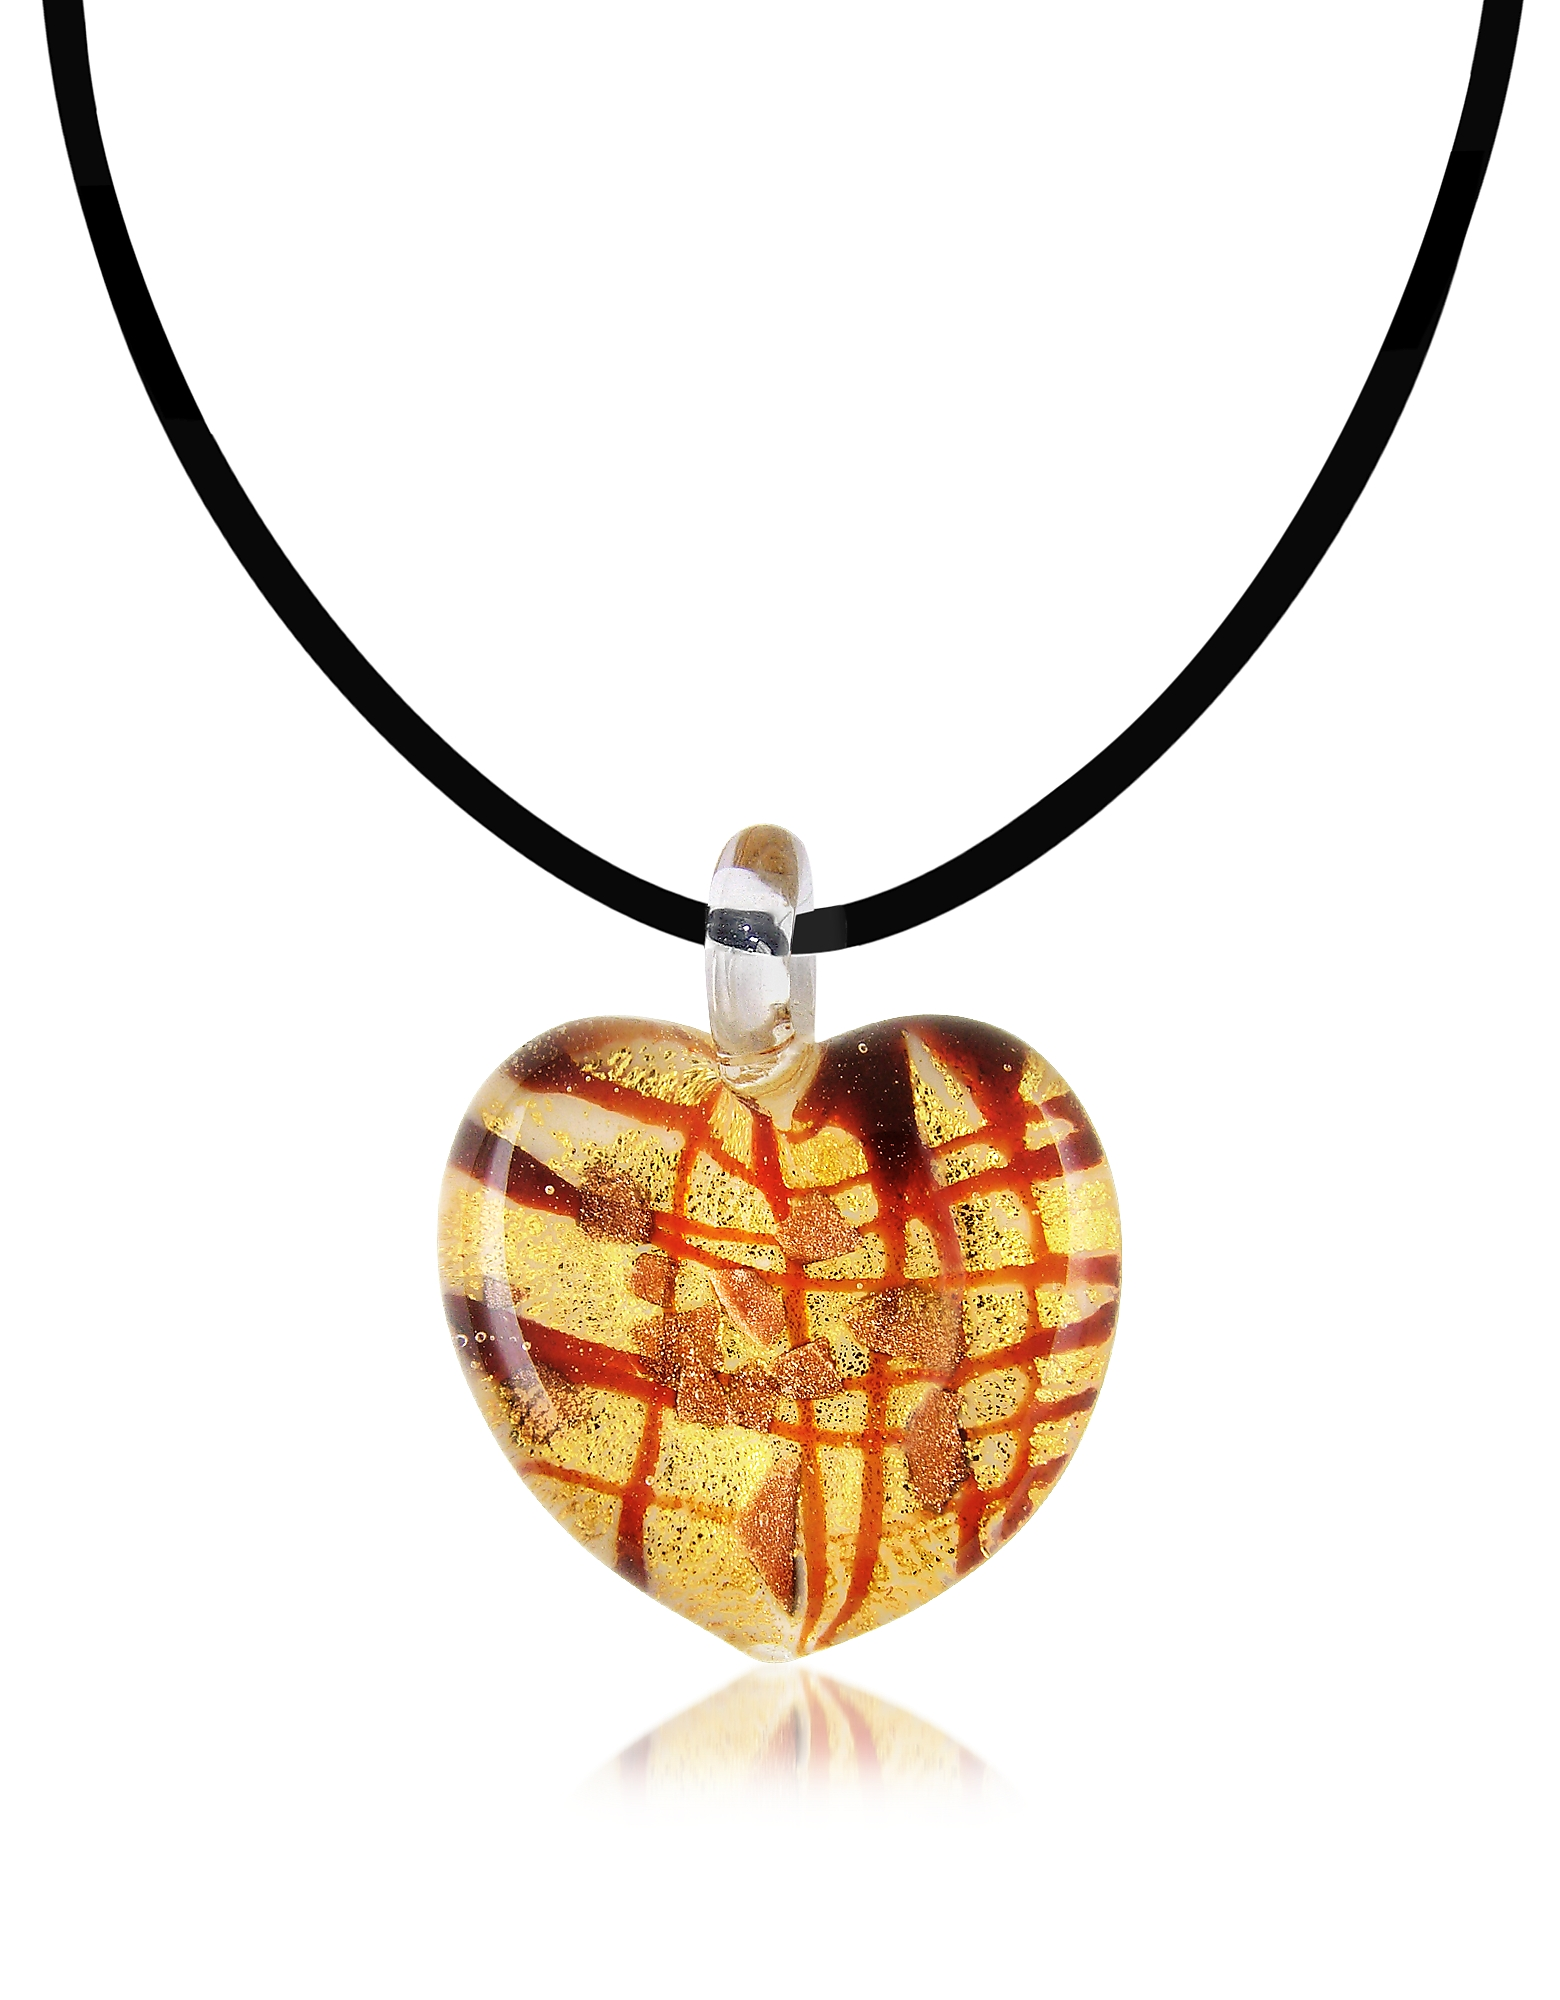 Antica Murrina Designer Necklaces, Passione - Murano Glass Heart Pendant